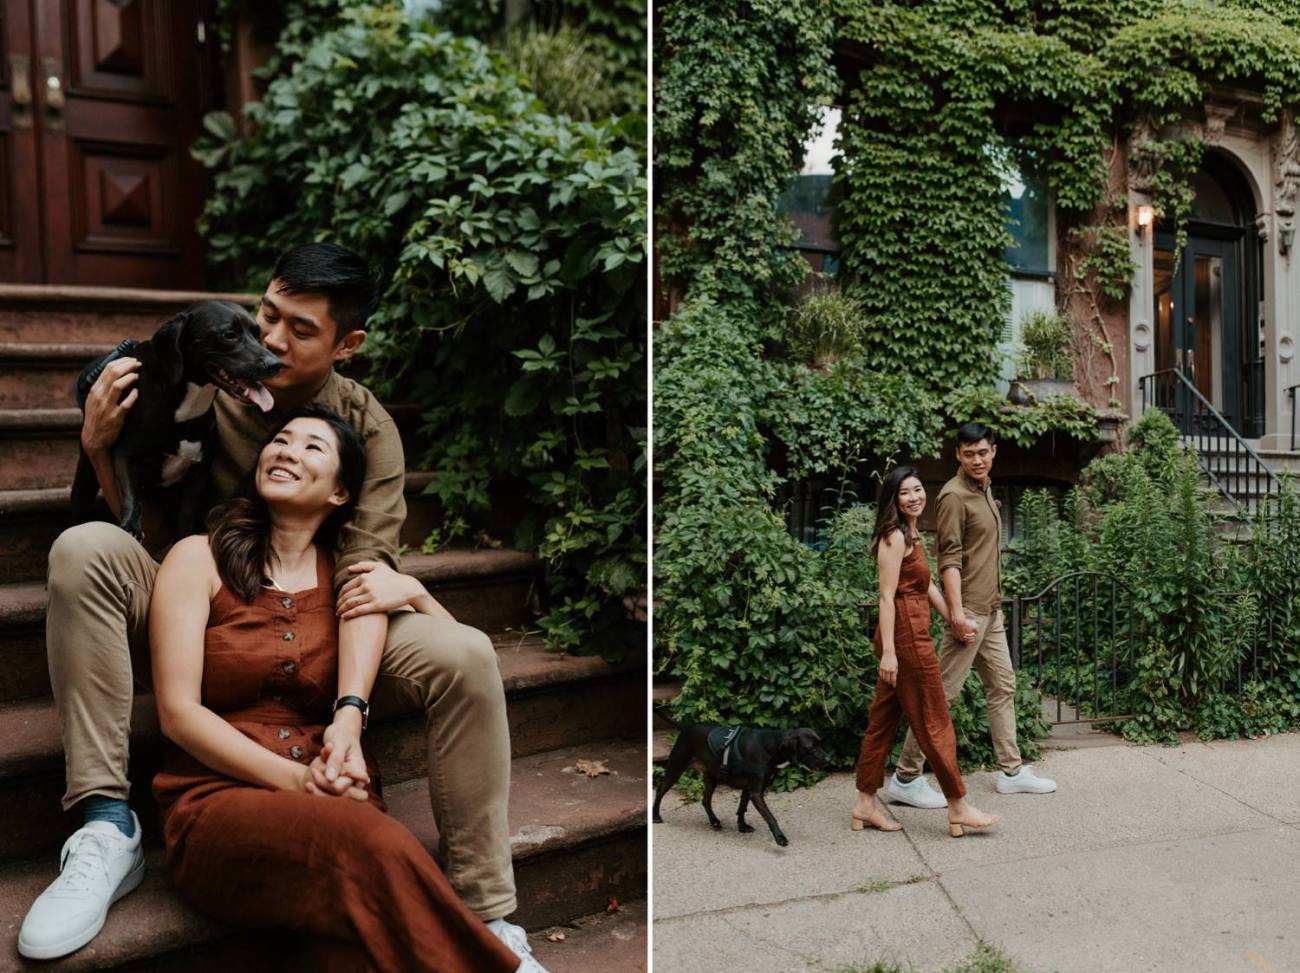 Fort Greene Brooklyn Engagement Session Brooklyn Wedding Photographer New York Wedding Photographer Anais Possamai Photography 014